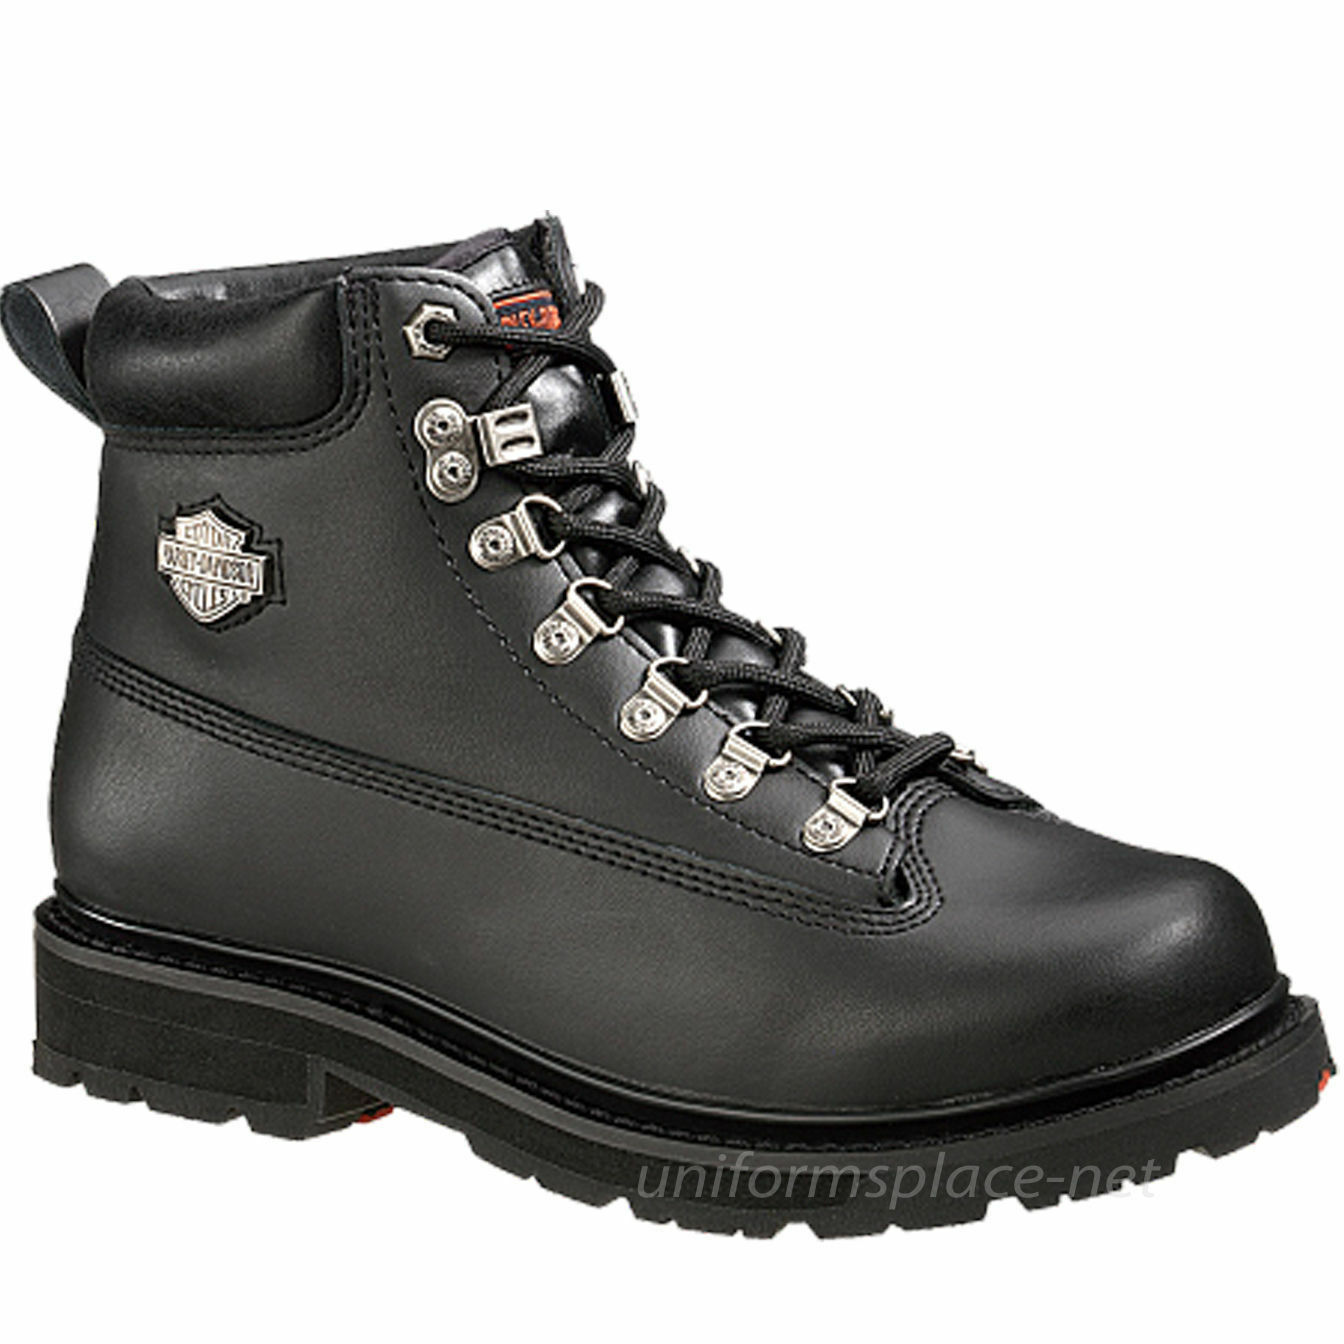 Harley Davidson Work, Riding Leather Boots Men Steel Toe Motorcycle DRIVE D91144